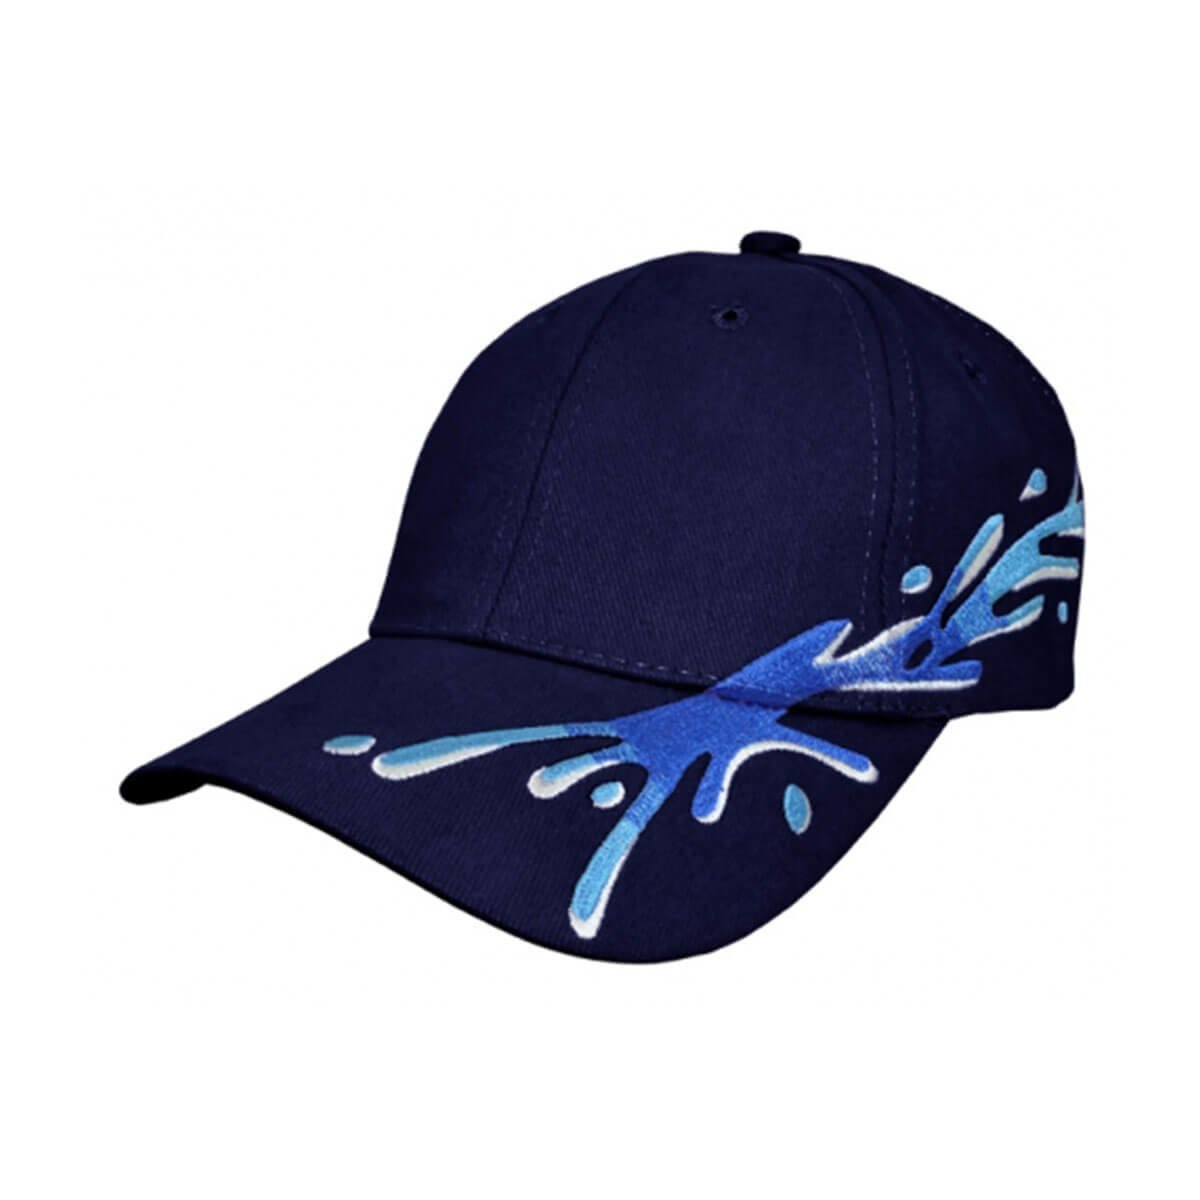 Splash Cap-Navy / Royal / Sky / White